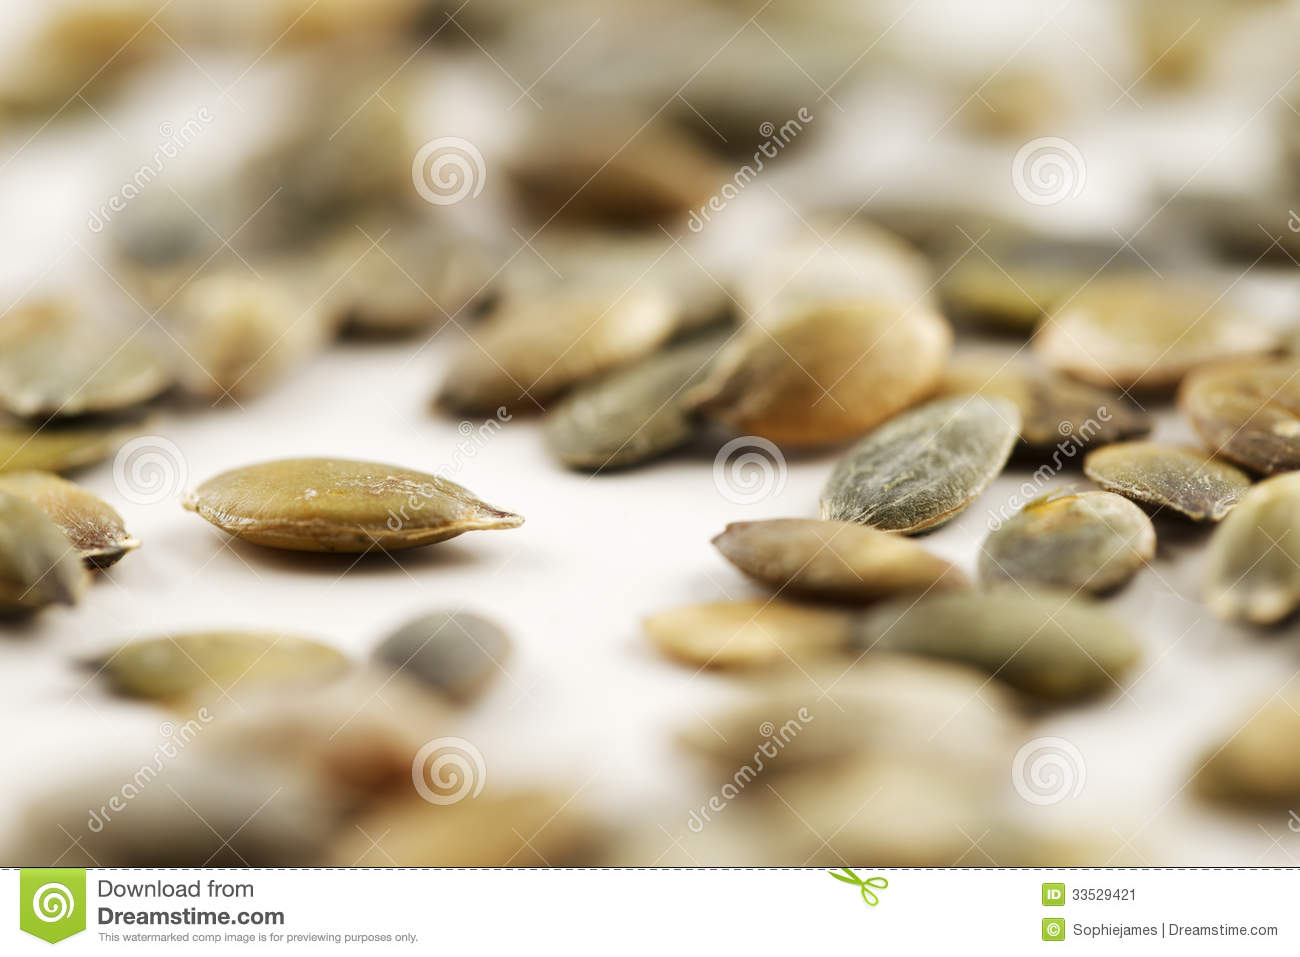 Organic green pumpkin seeds against a white background